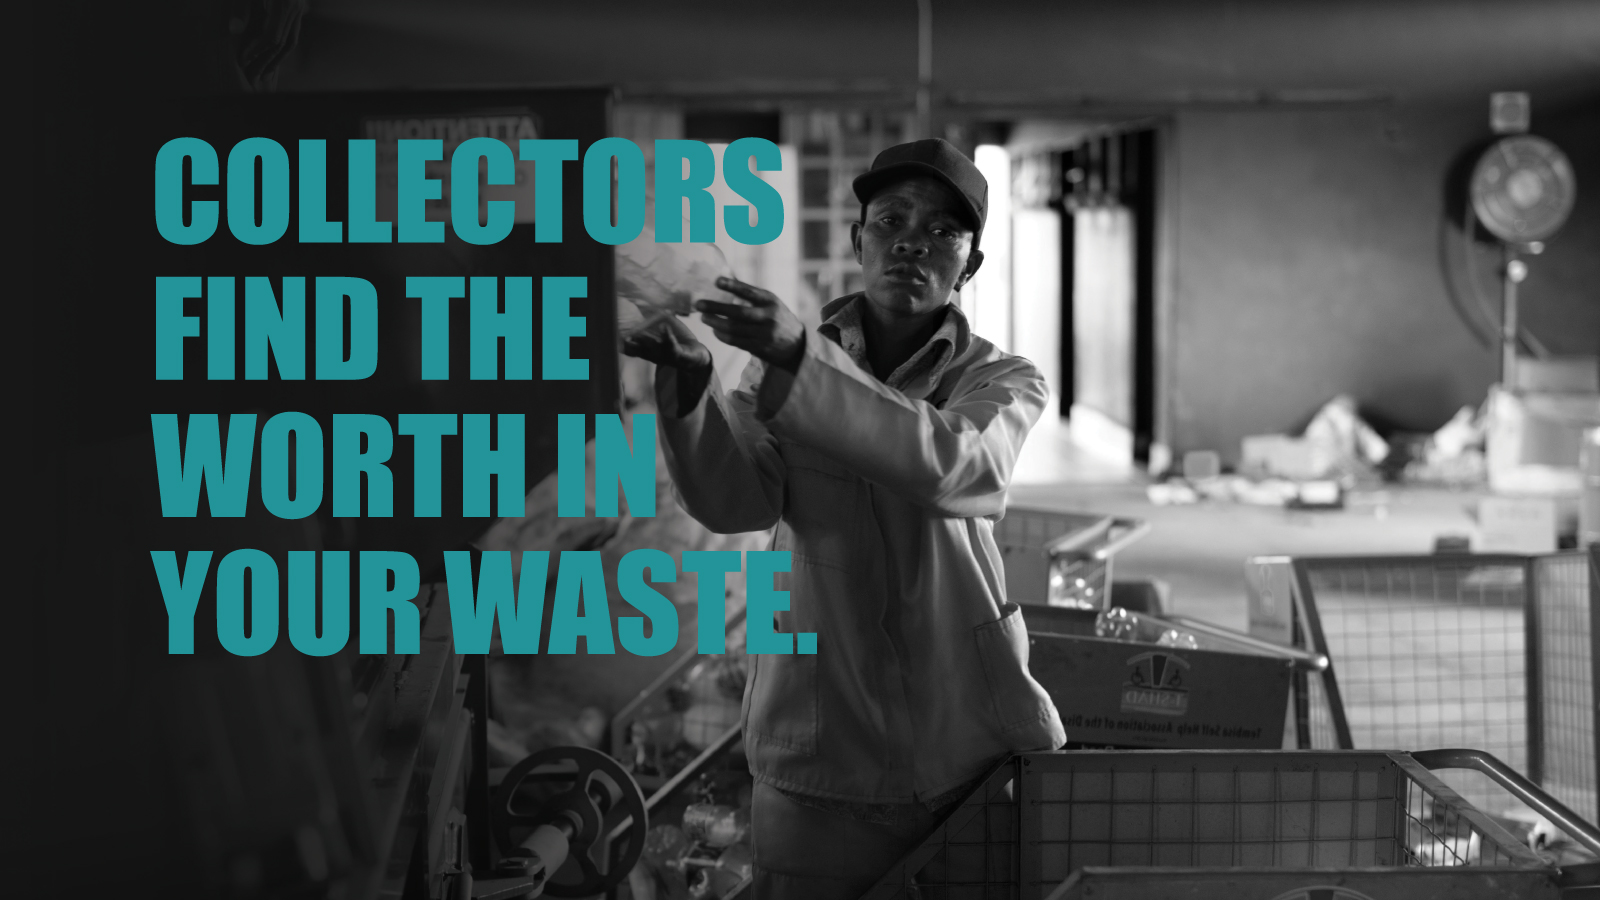 Collectors find the worth in your waste